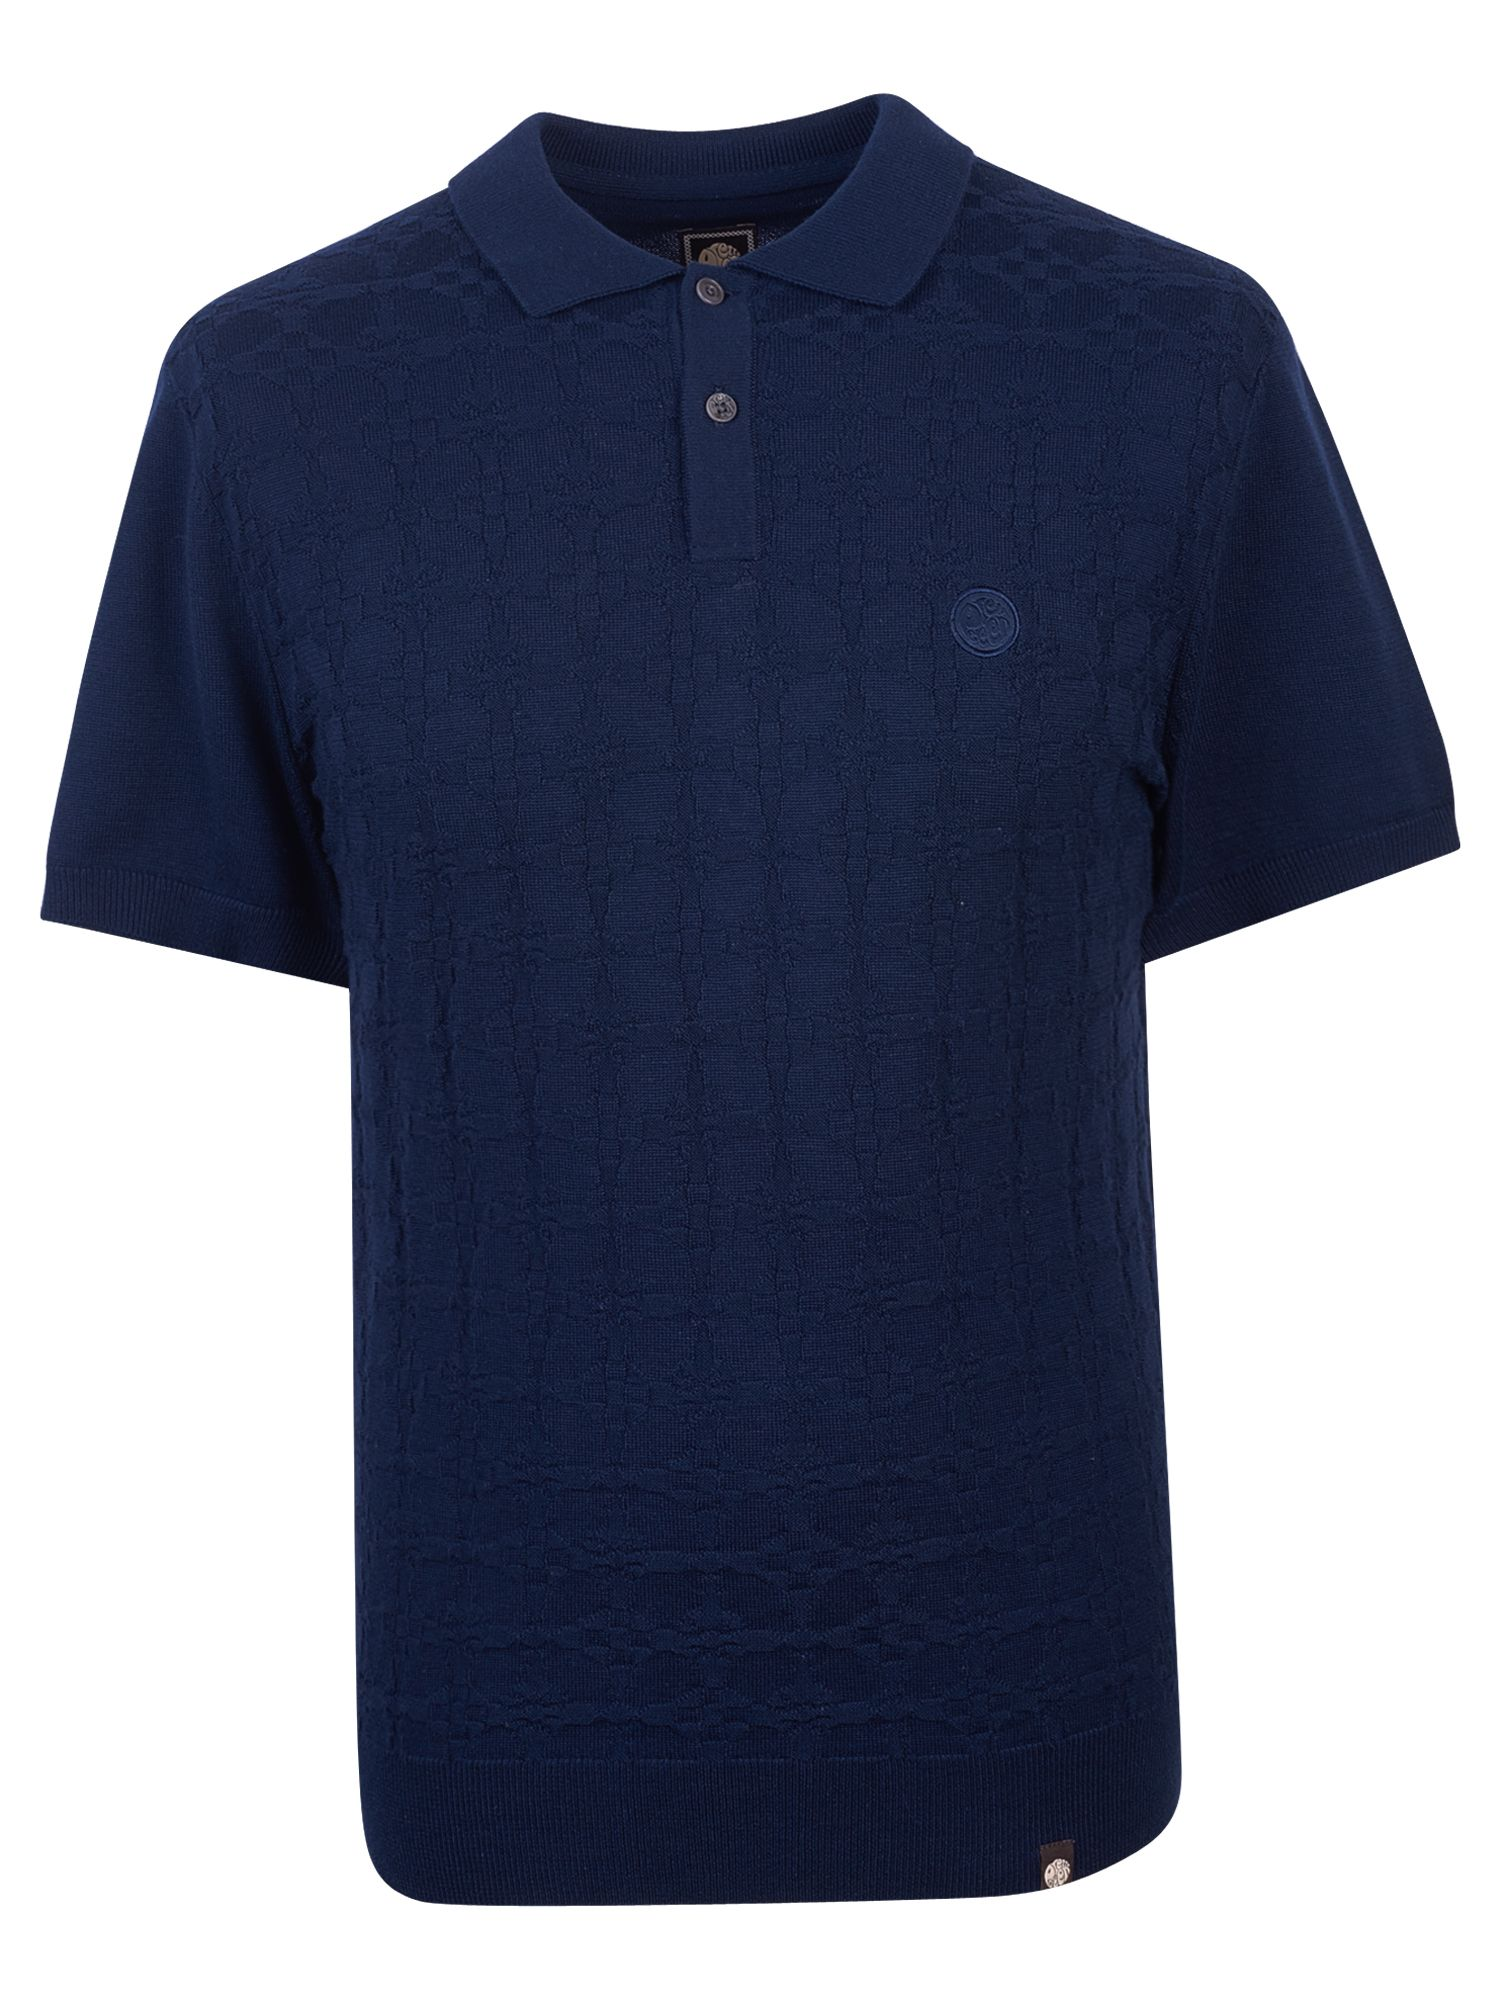 Men's Pretty Green Knitted jacquard Polo Shirt, Blue